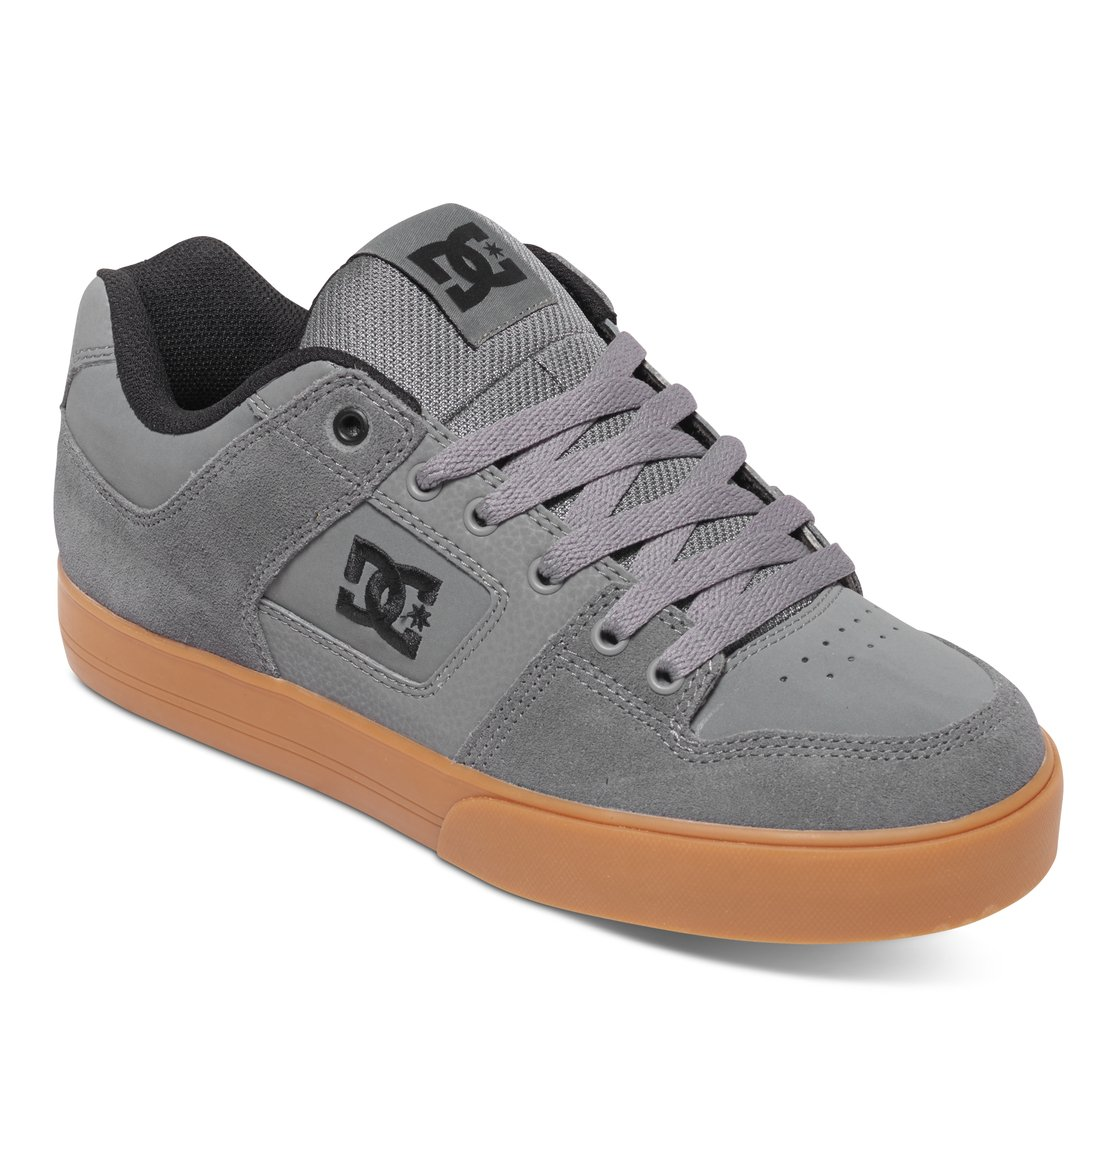 Blue And White Dc Shoes